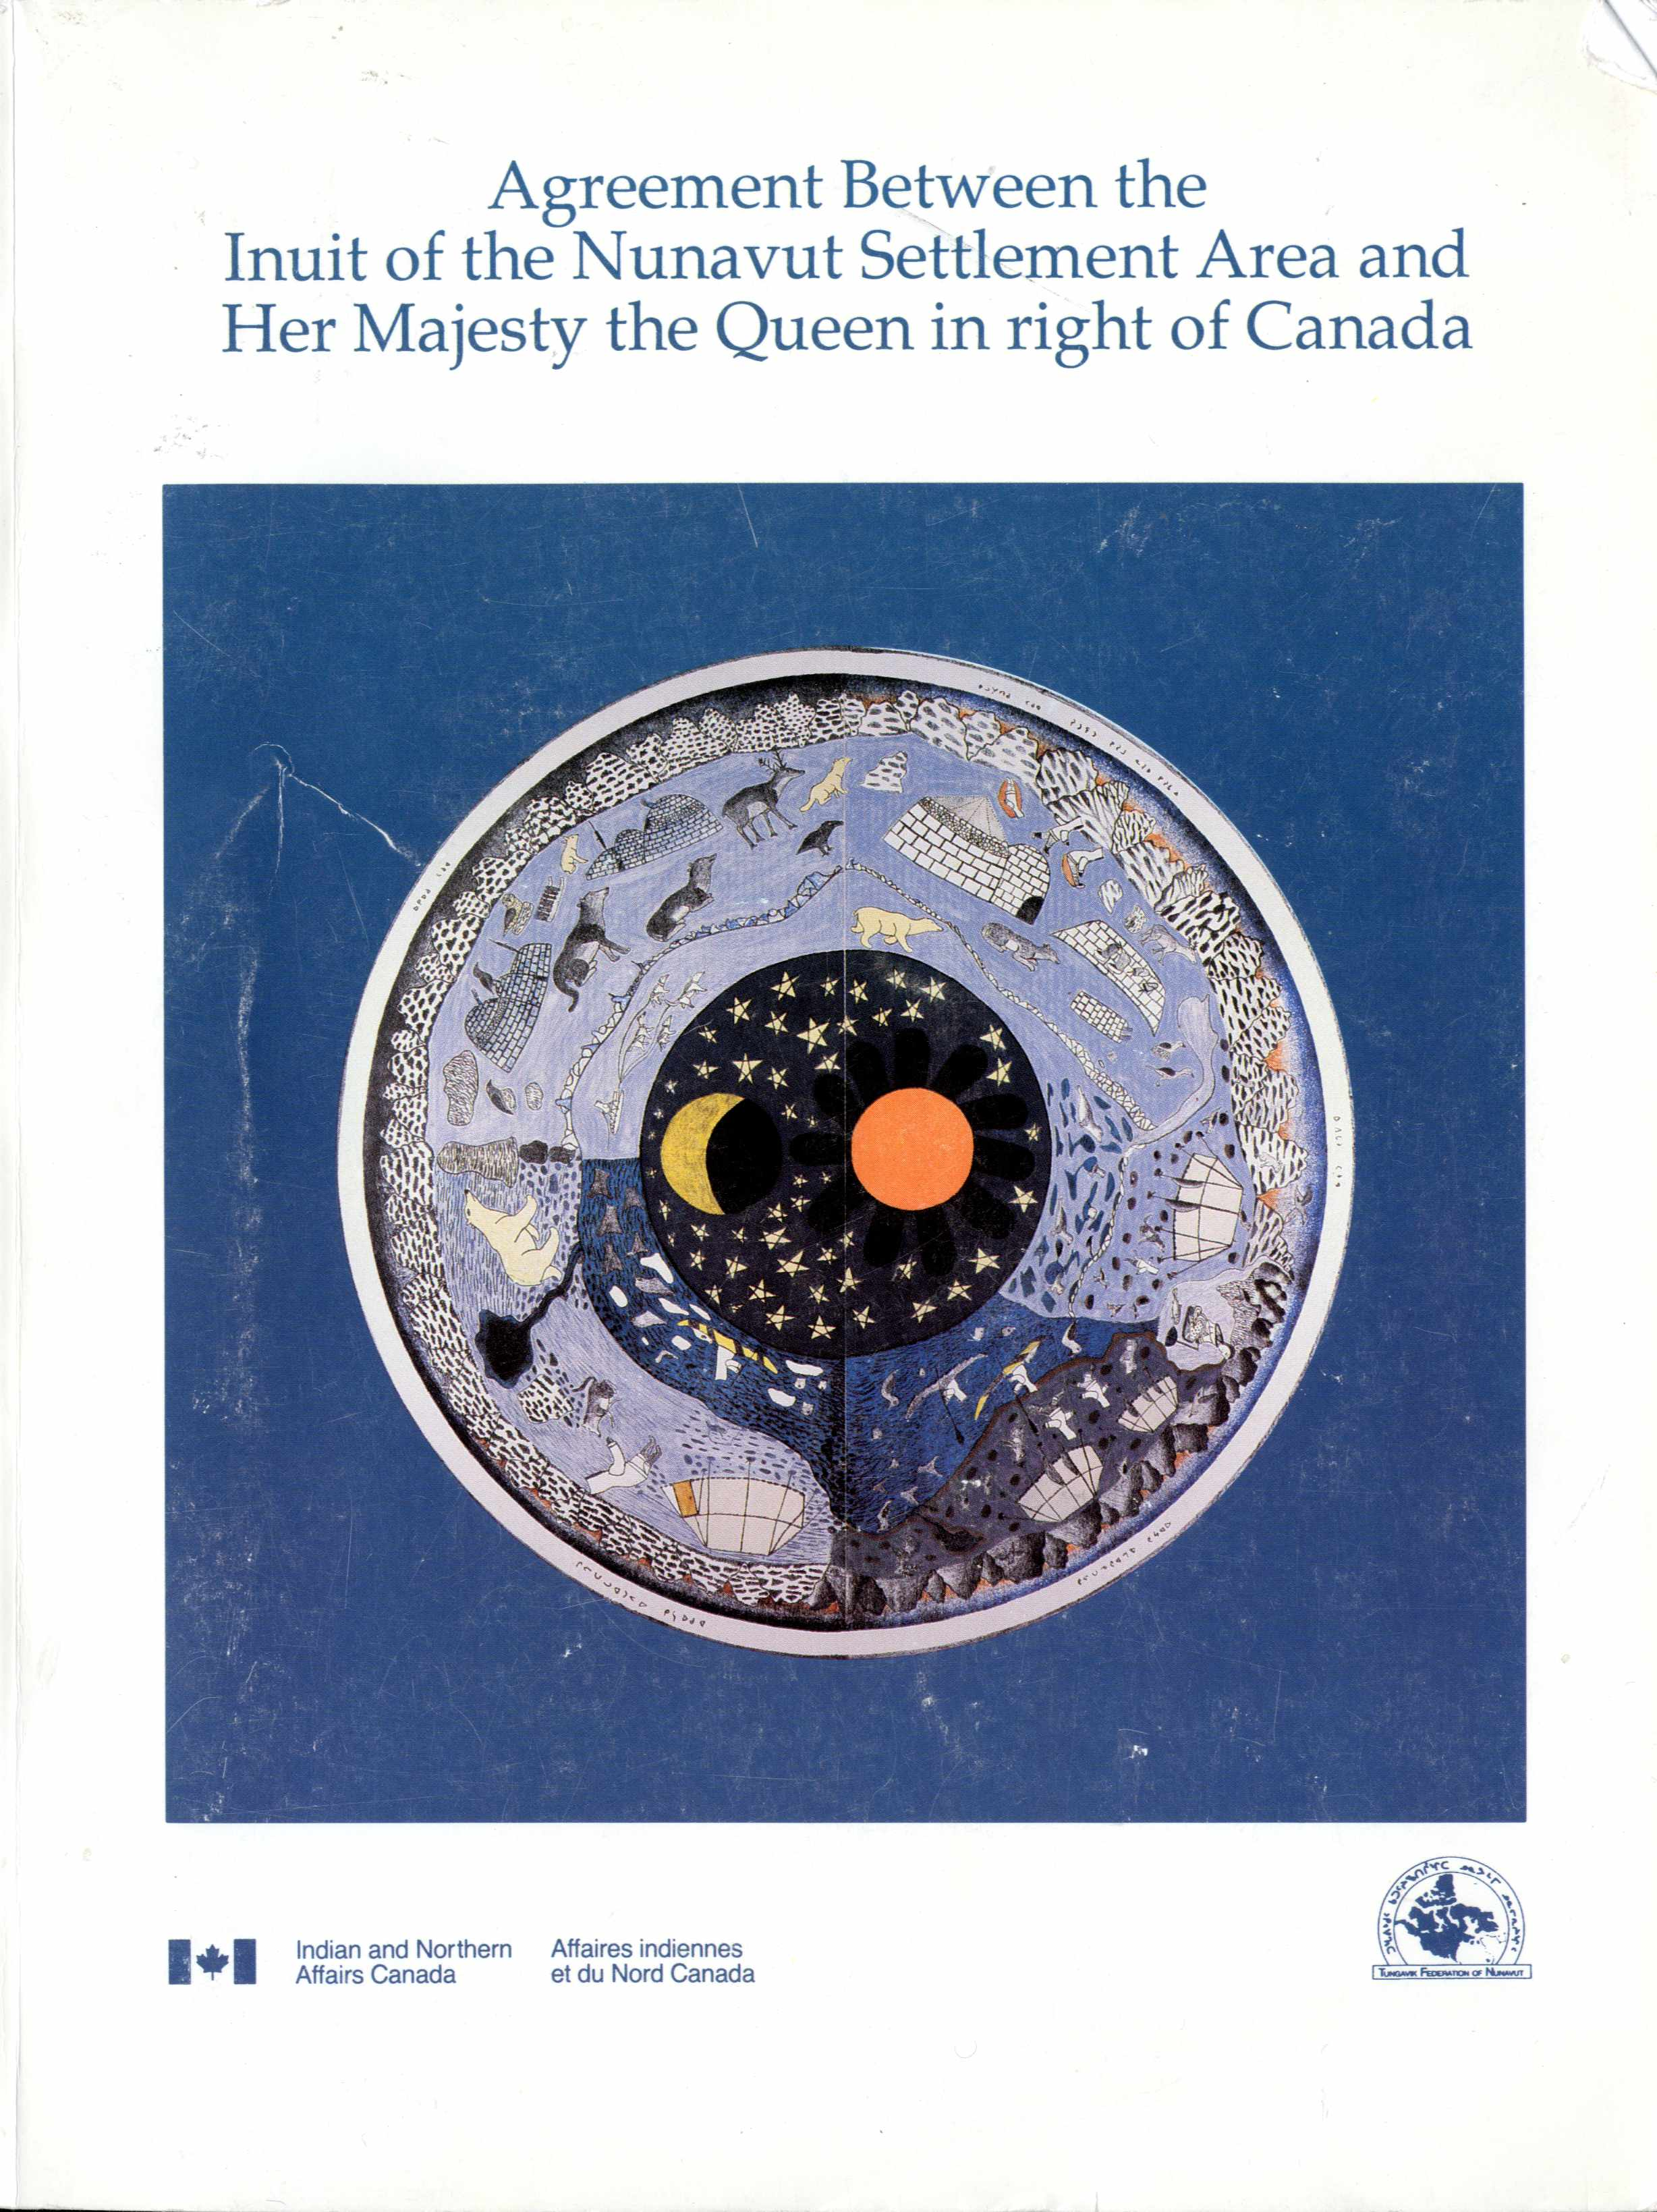 Agreement Between the Inuit of the Nunavut Settlement Area dn Her Majesty the Queen in right of Canada Image